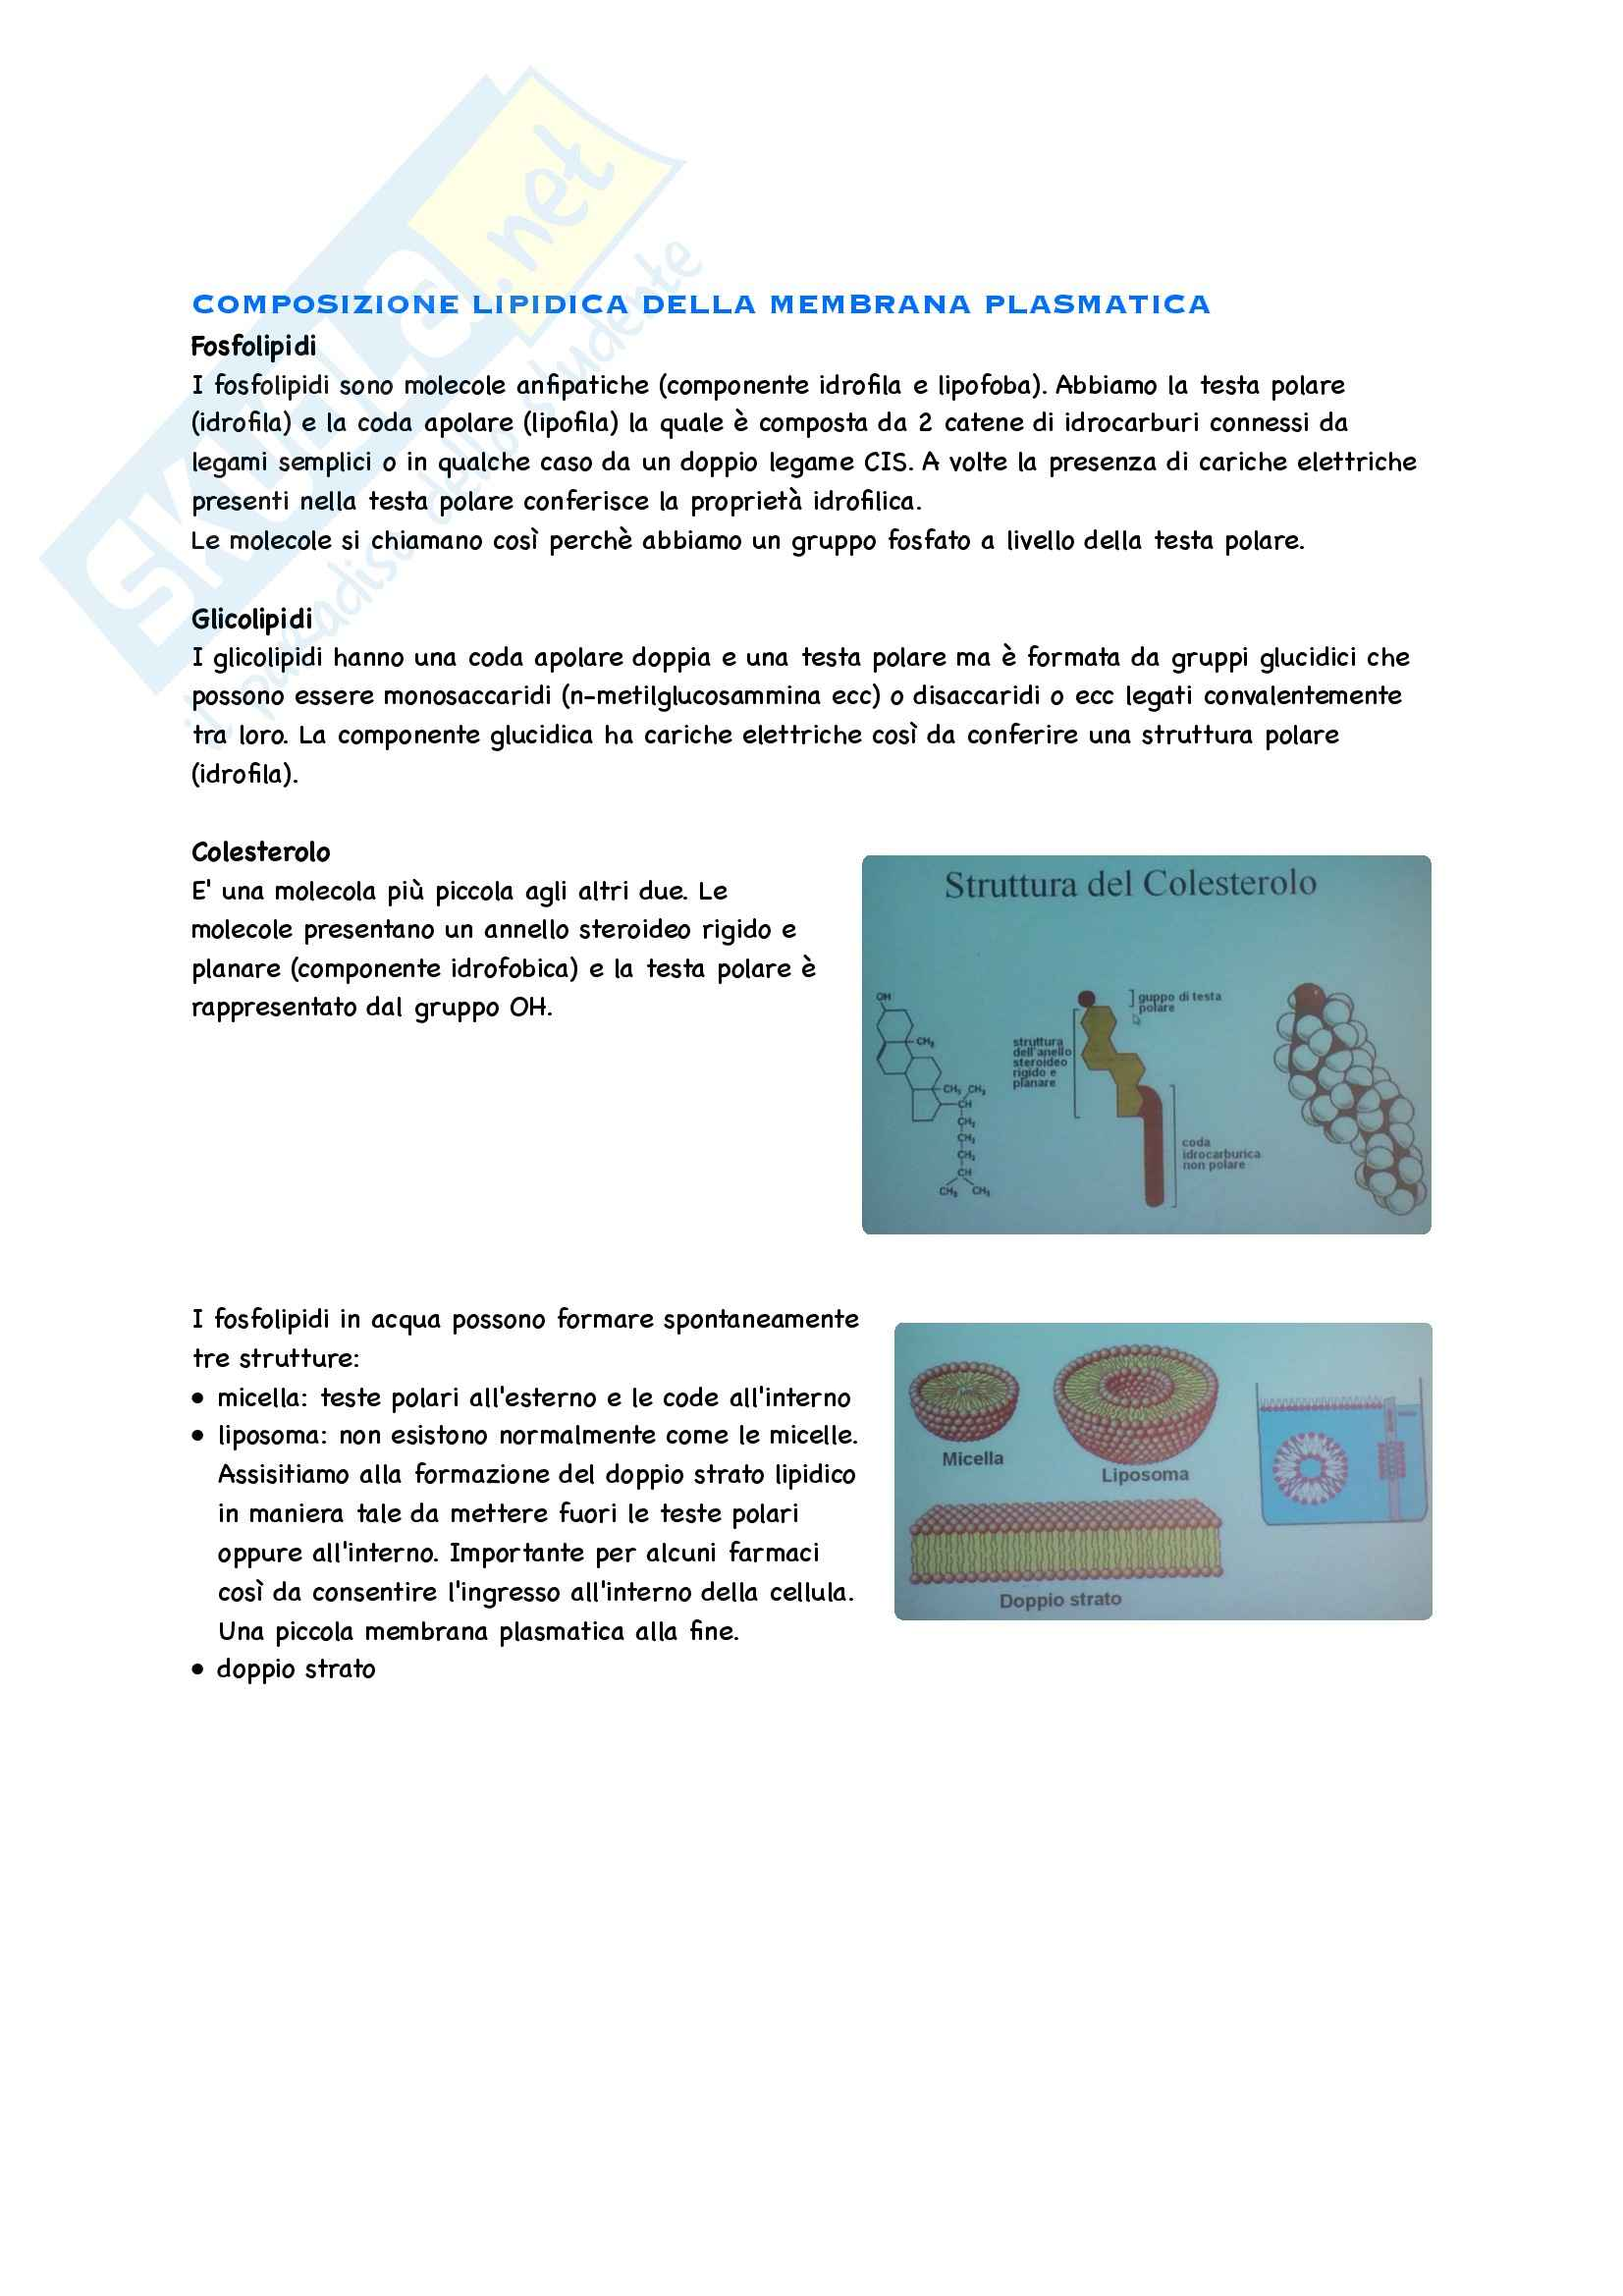 Fisiologia Cellulare Pag. 2